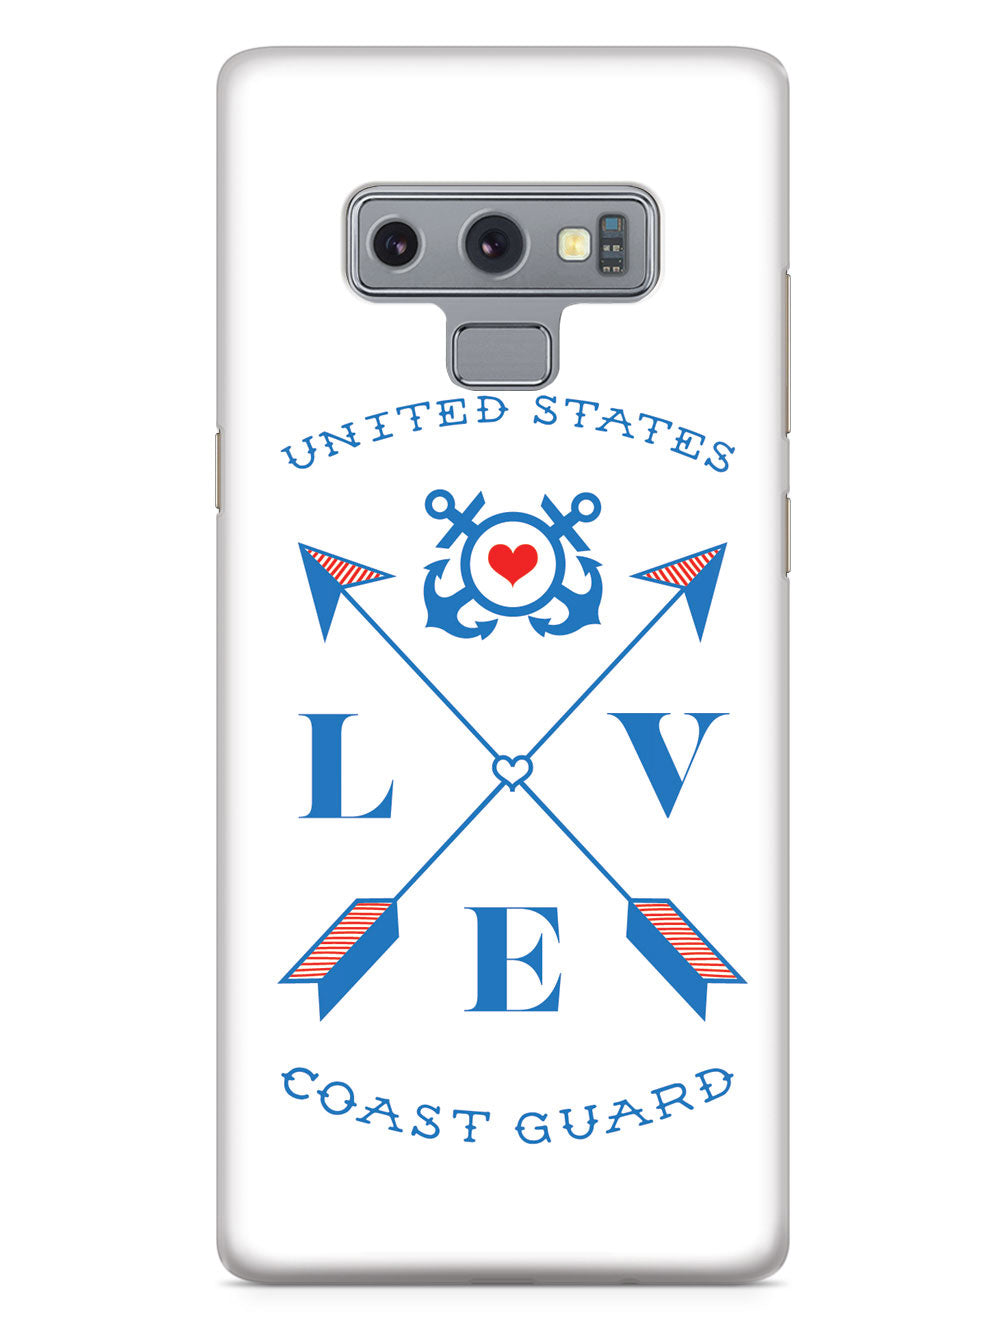 Love Arrow Cross - U.S. Coast Guard Case